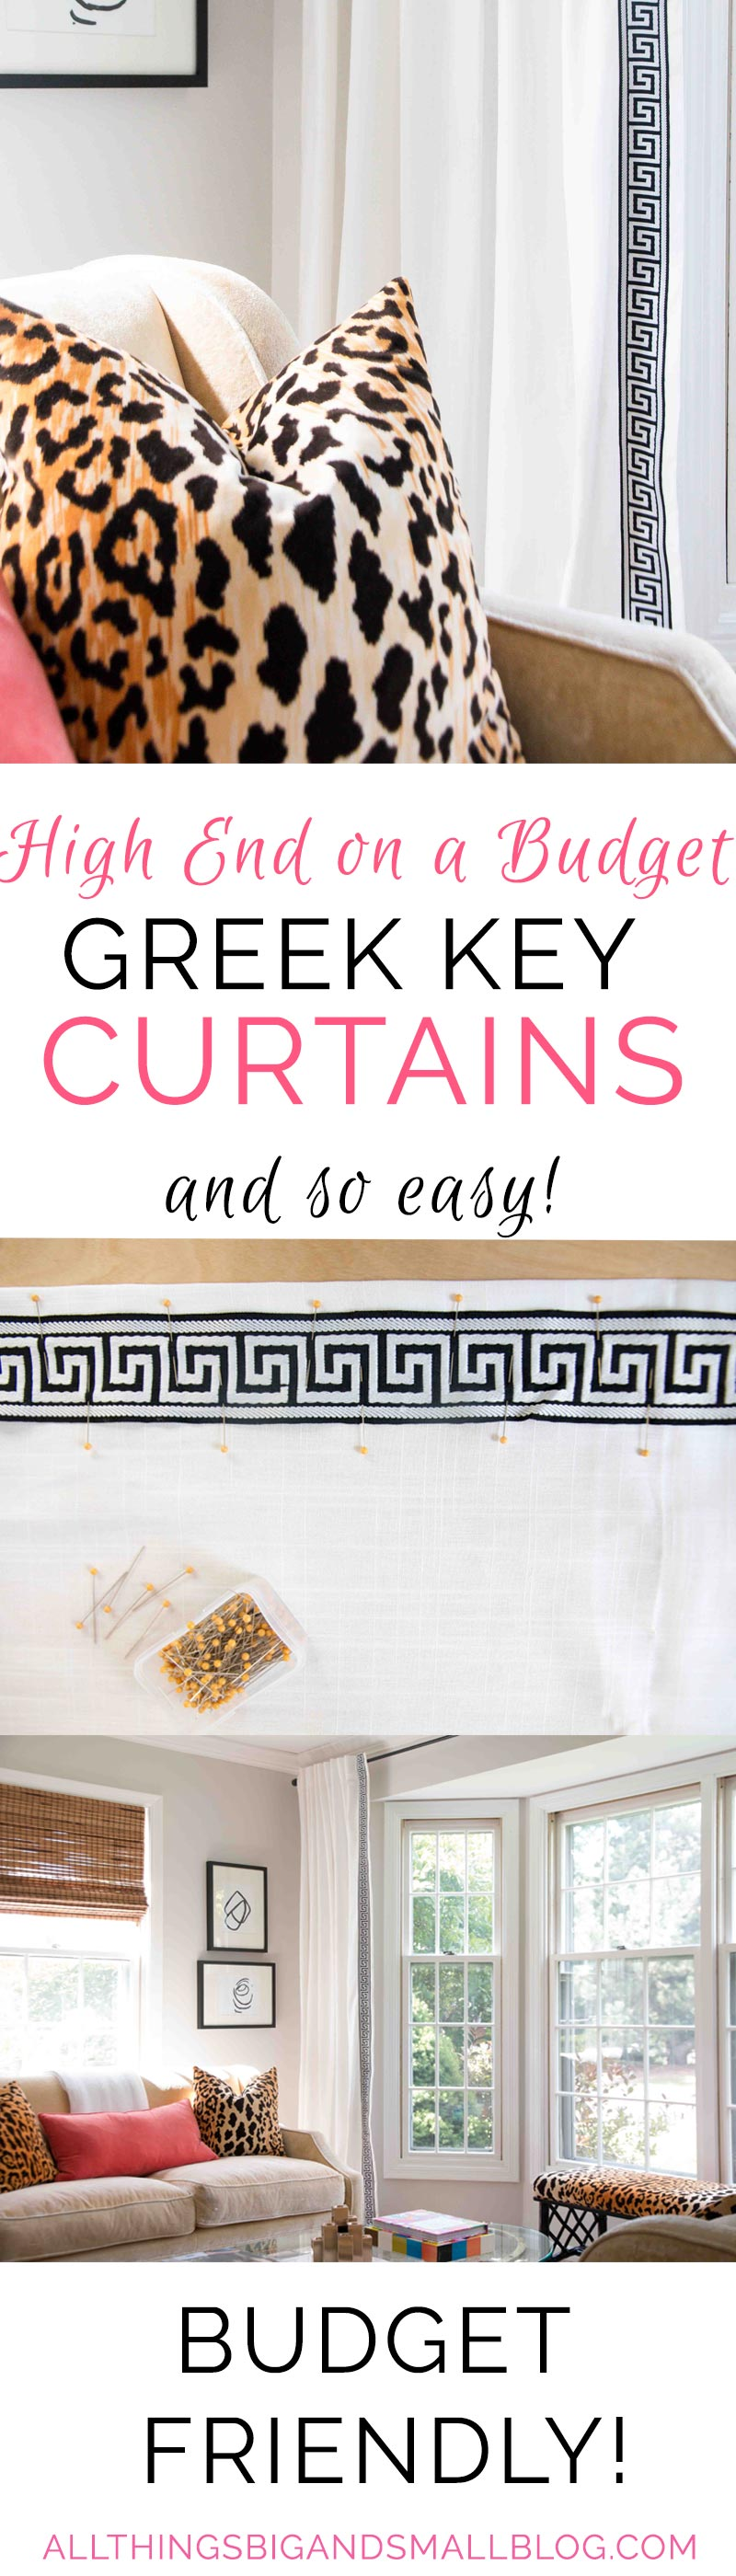 Budget Friendly DIY Greek Key Curtains | DIY Curtains | Greek Key Trim | ALL THINGS BIG AND SMALL BLOG - DIY Greek Key Curtains by popular home decor blogger DIY Decor Mom